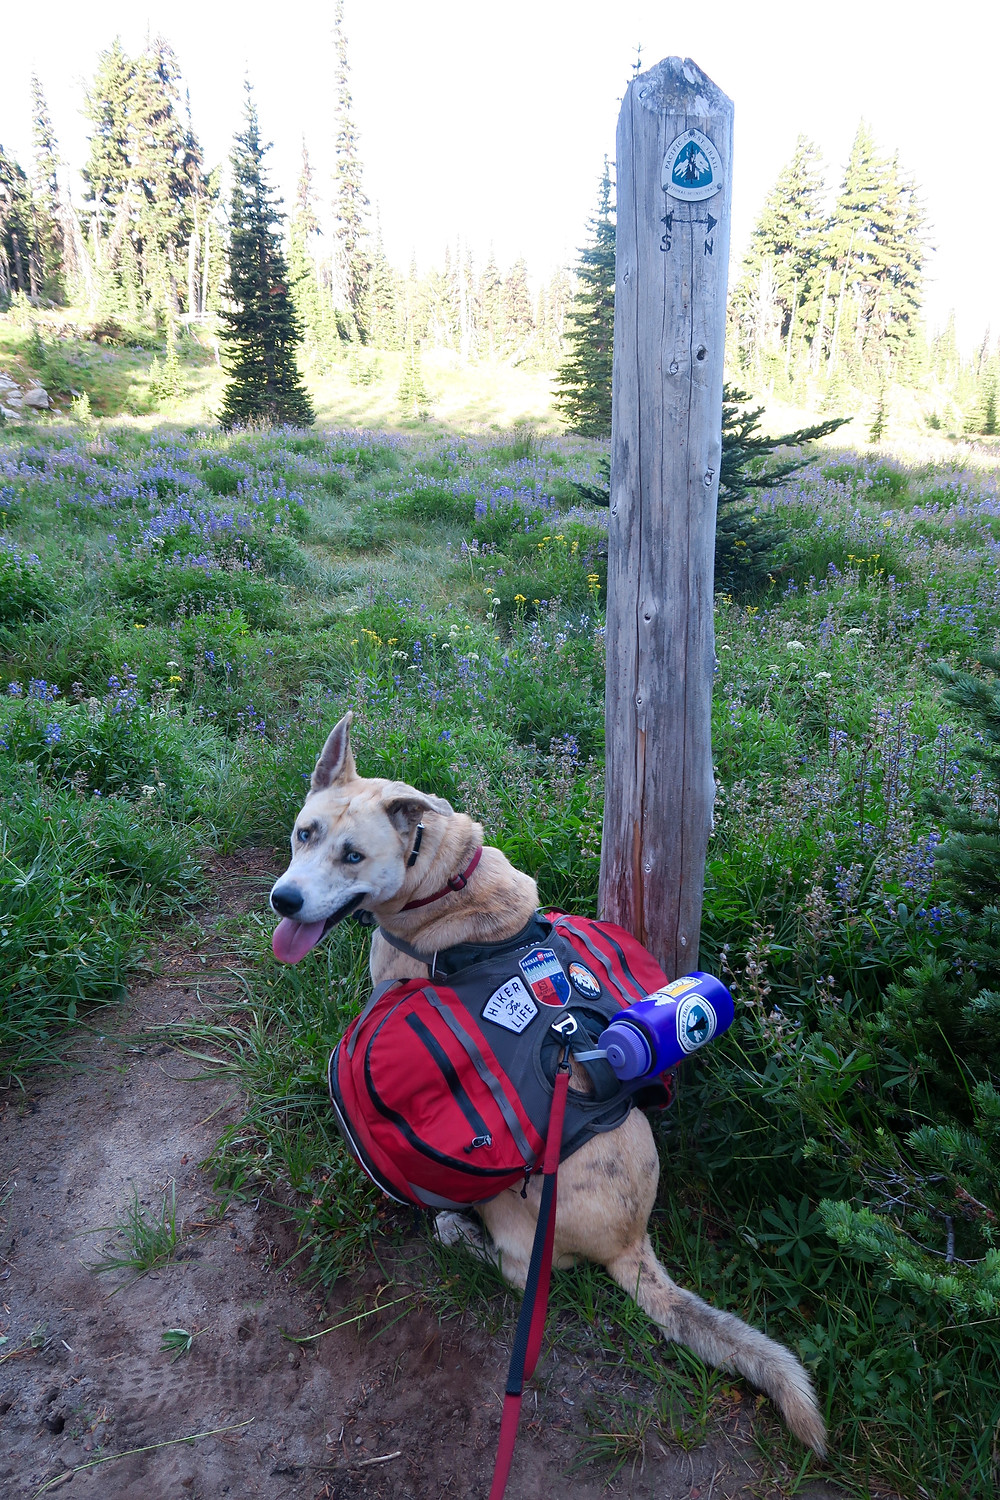 A blond dog wearing a red pack sits in front of a wooden post with the PCT symbol and arrows pointing north and south. They are surrounded by a wildflower meadow, with coniferous trees in the background.